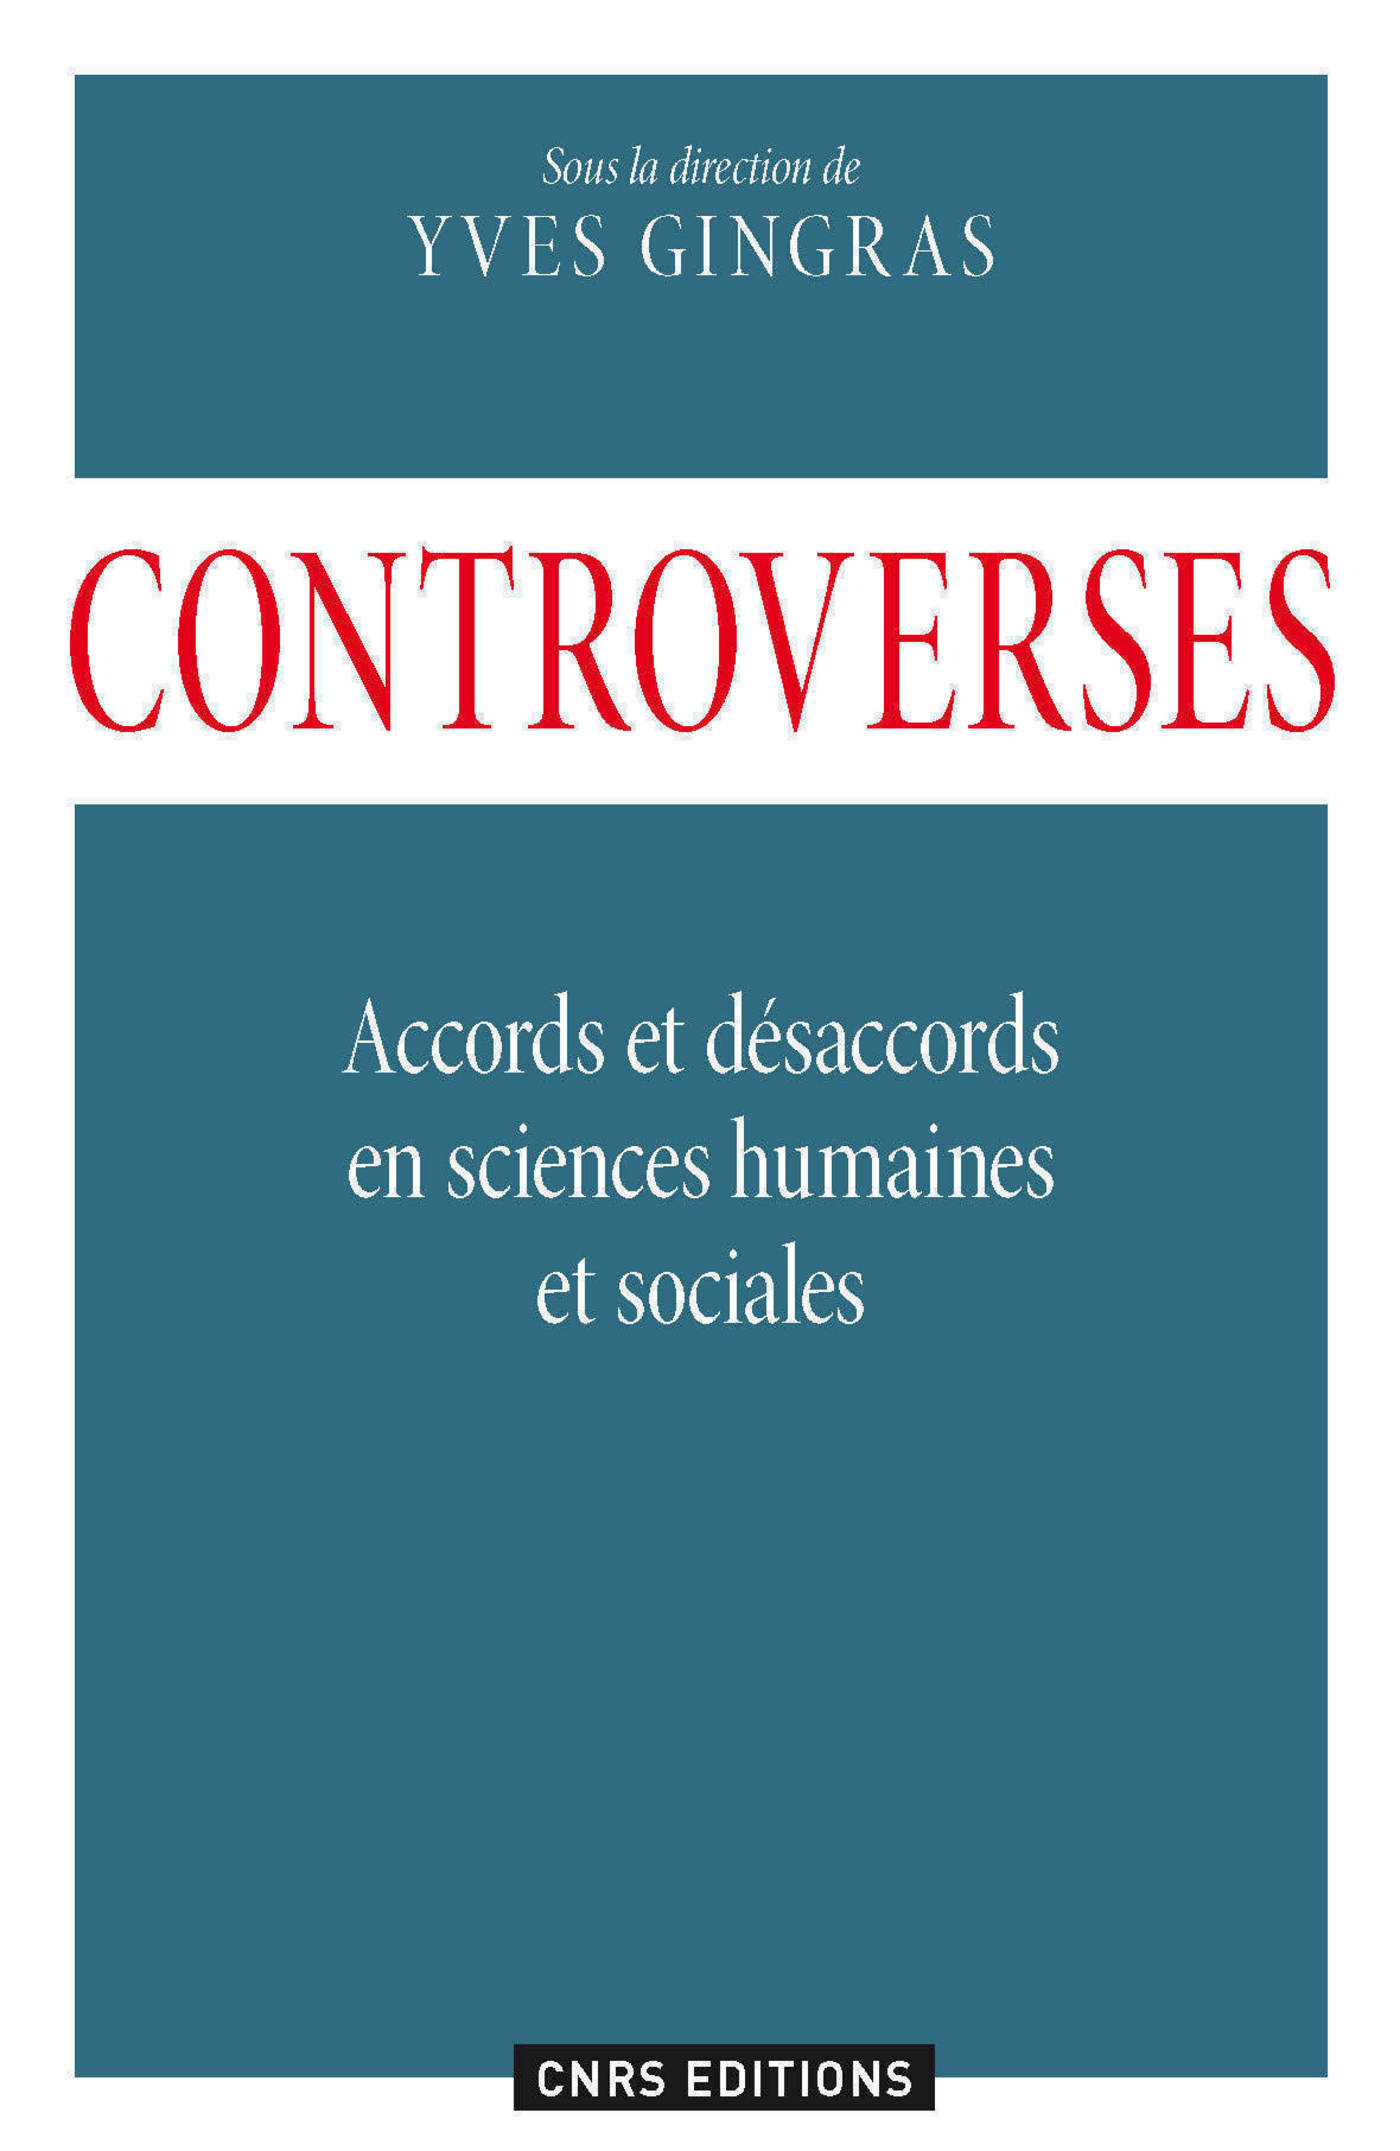 Controverses. Accords et désacords en sciences humaines et sociales